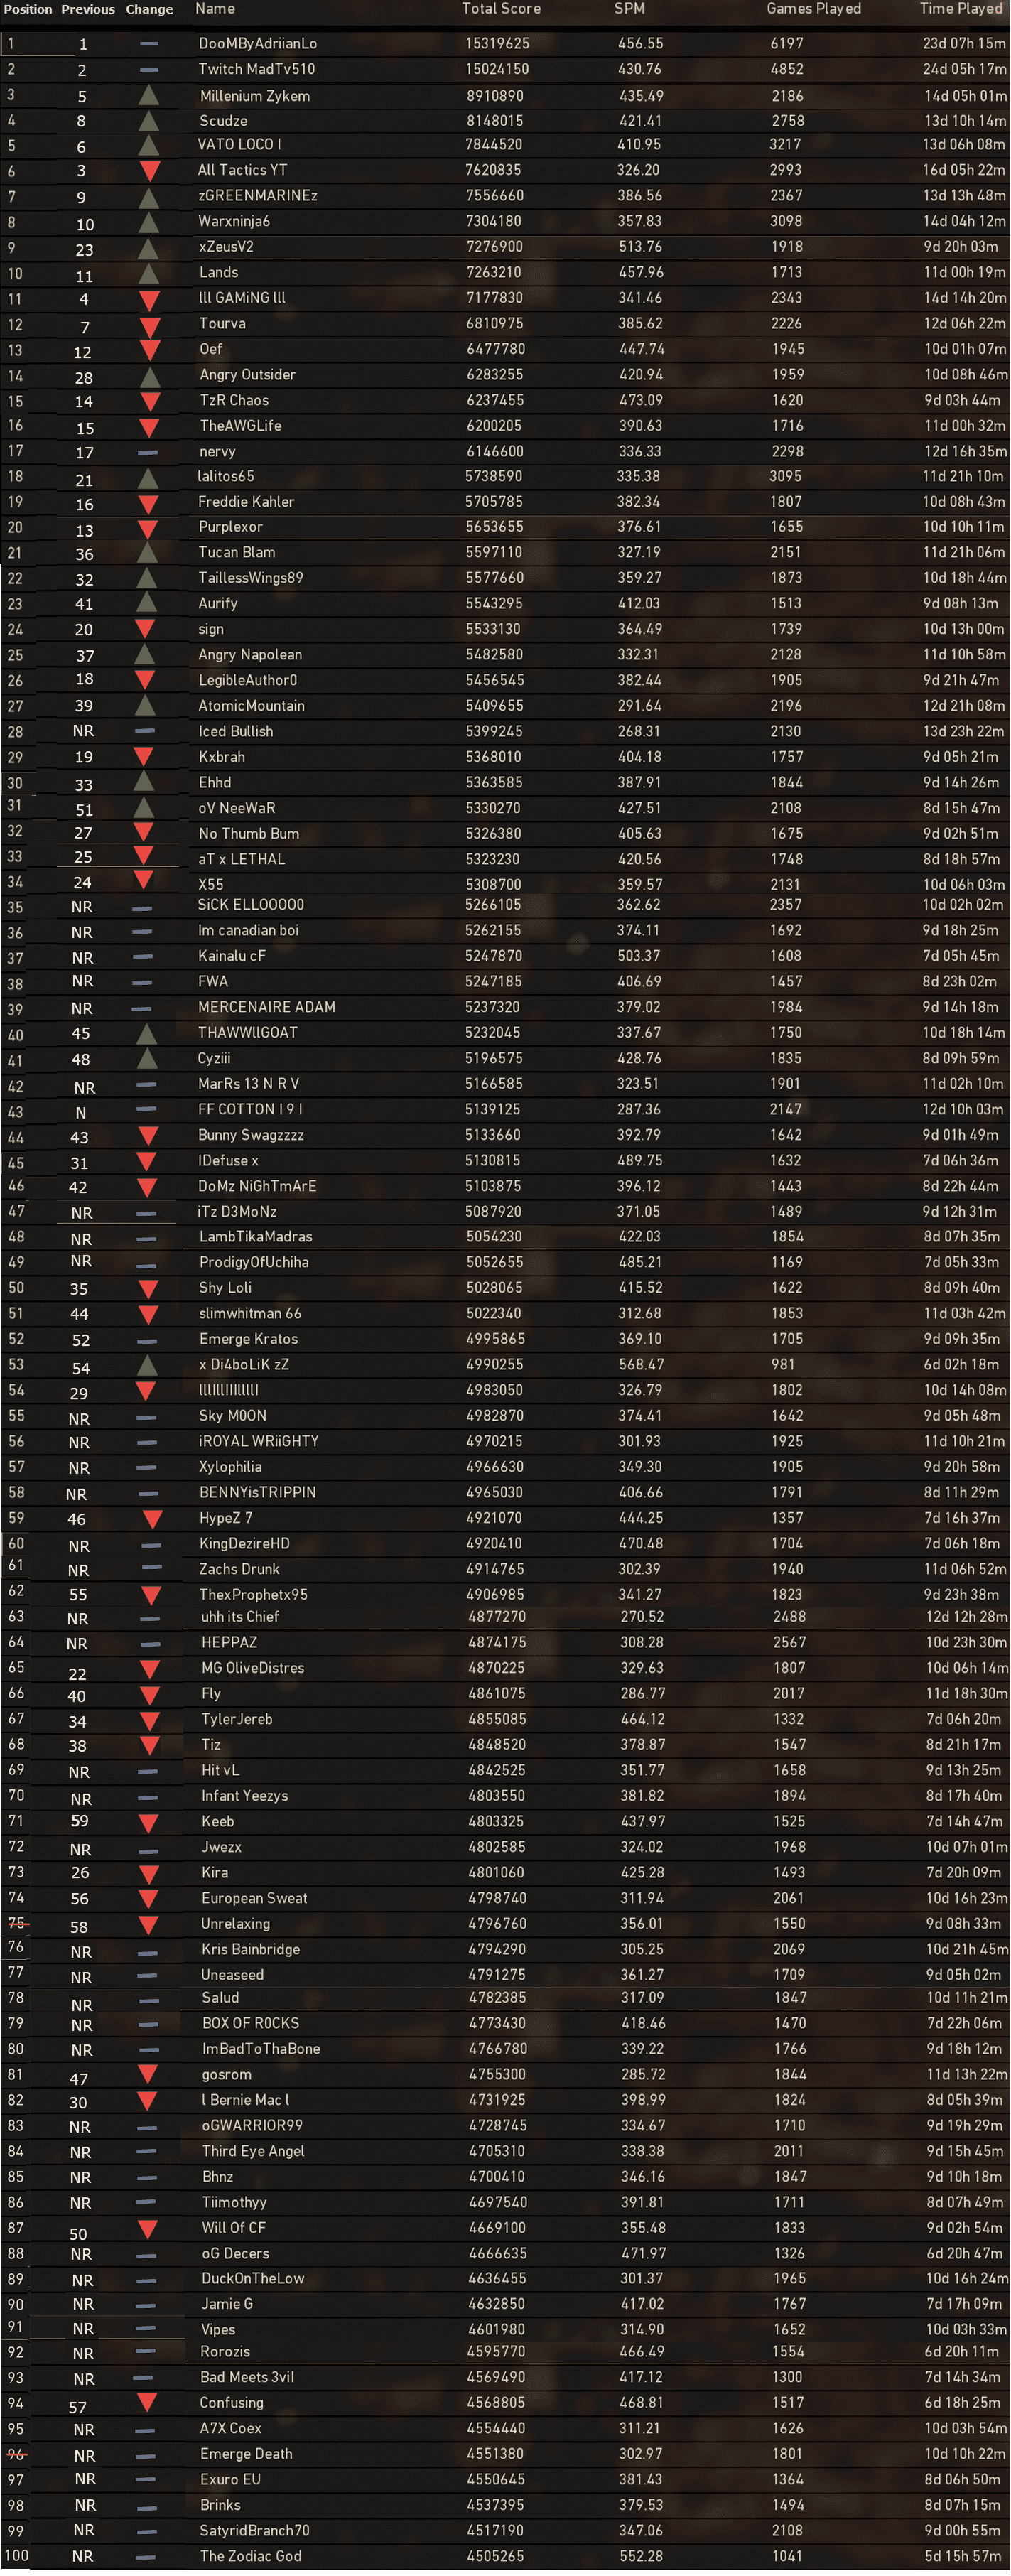 Call-of-Duty-WWII-Leaderboards-PS4-Dec11-2017